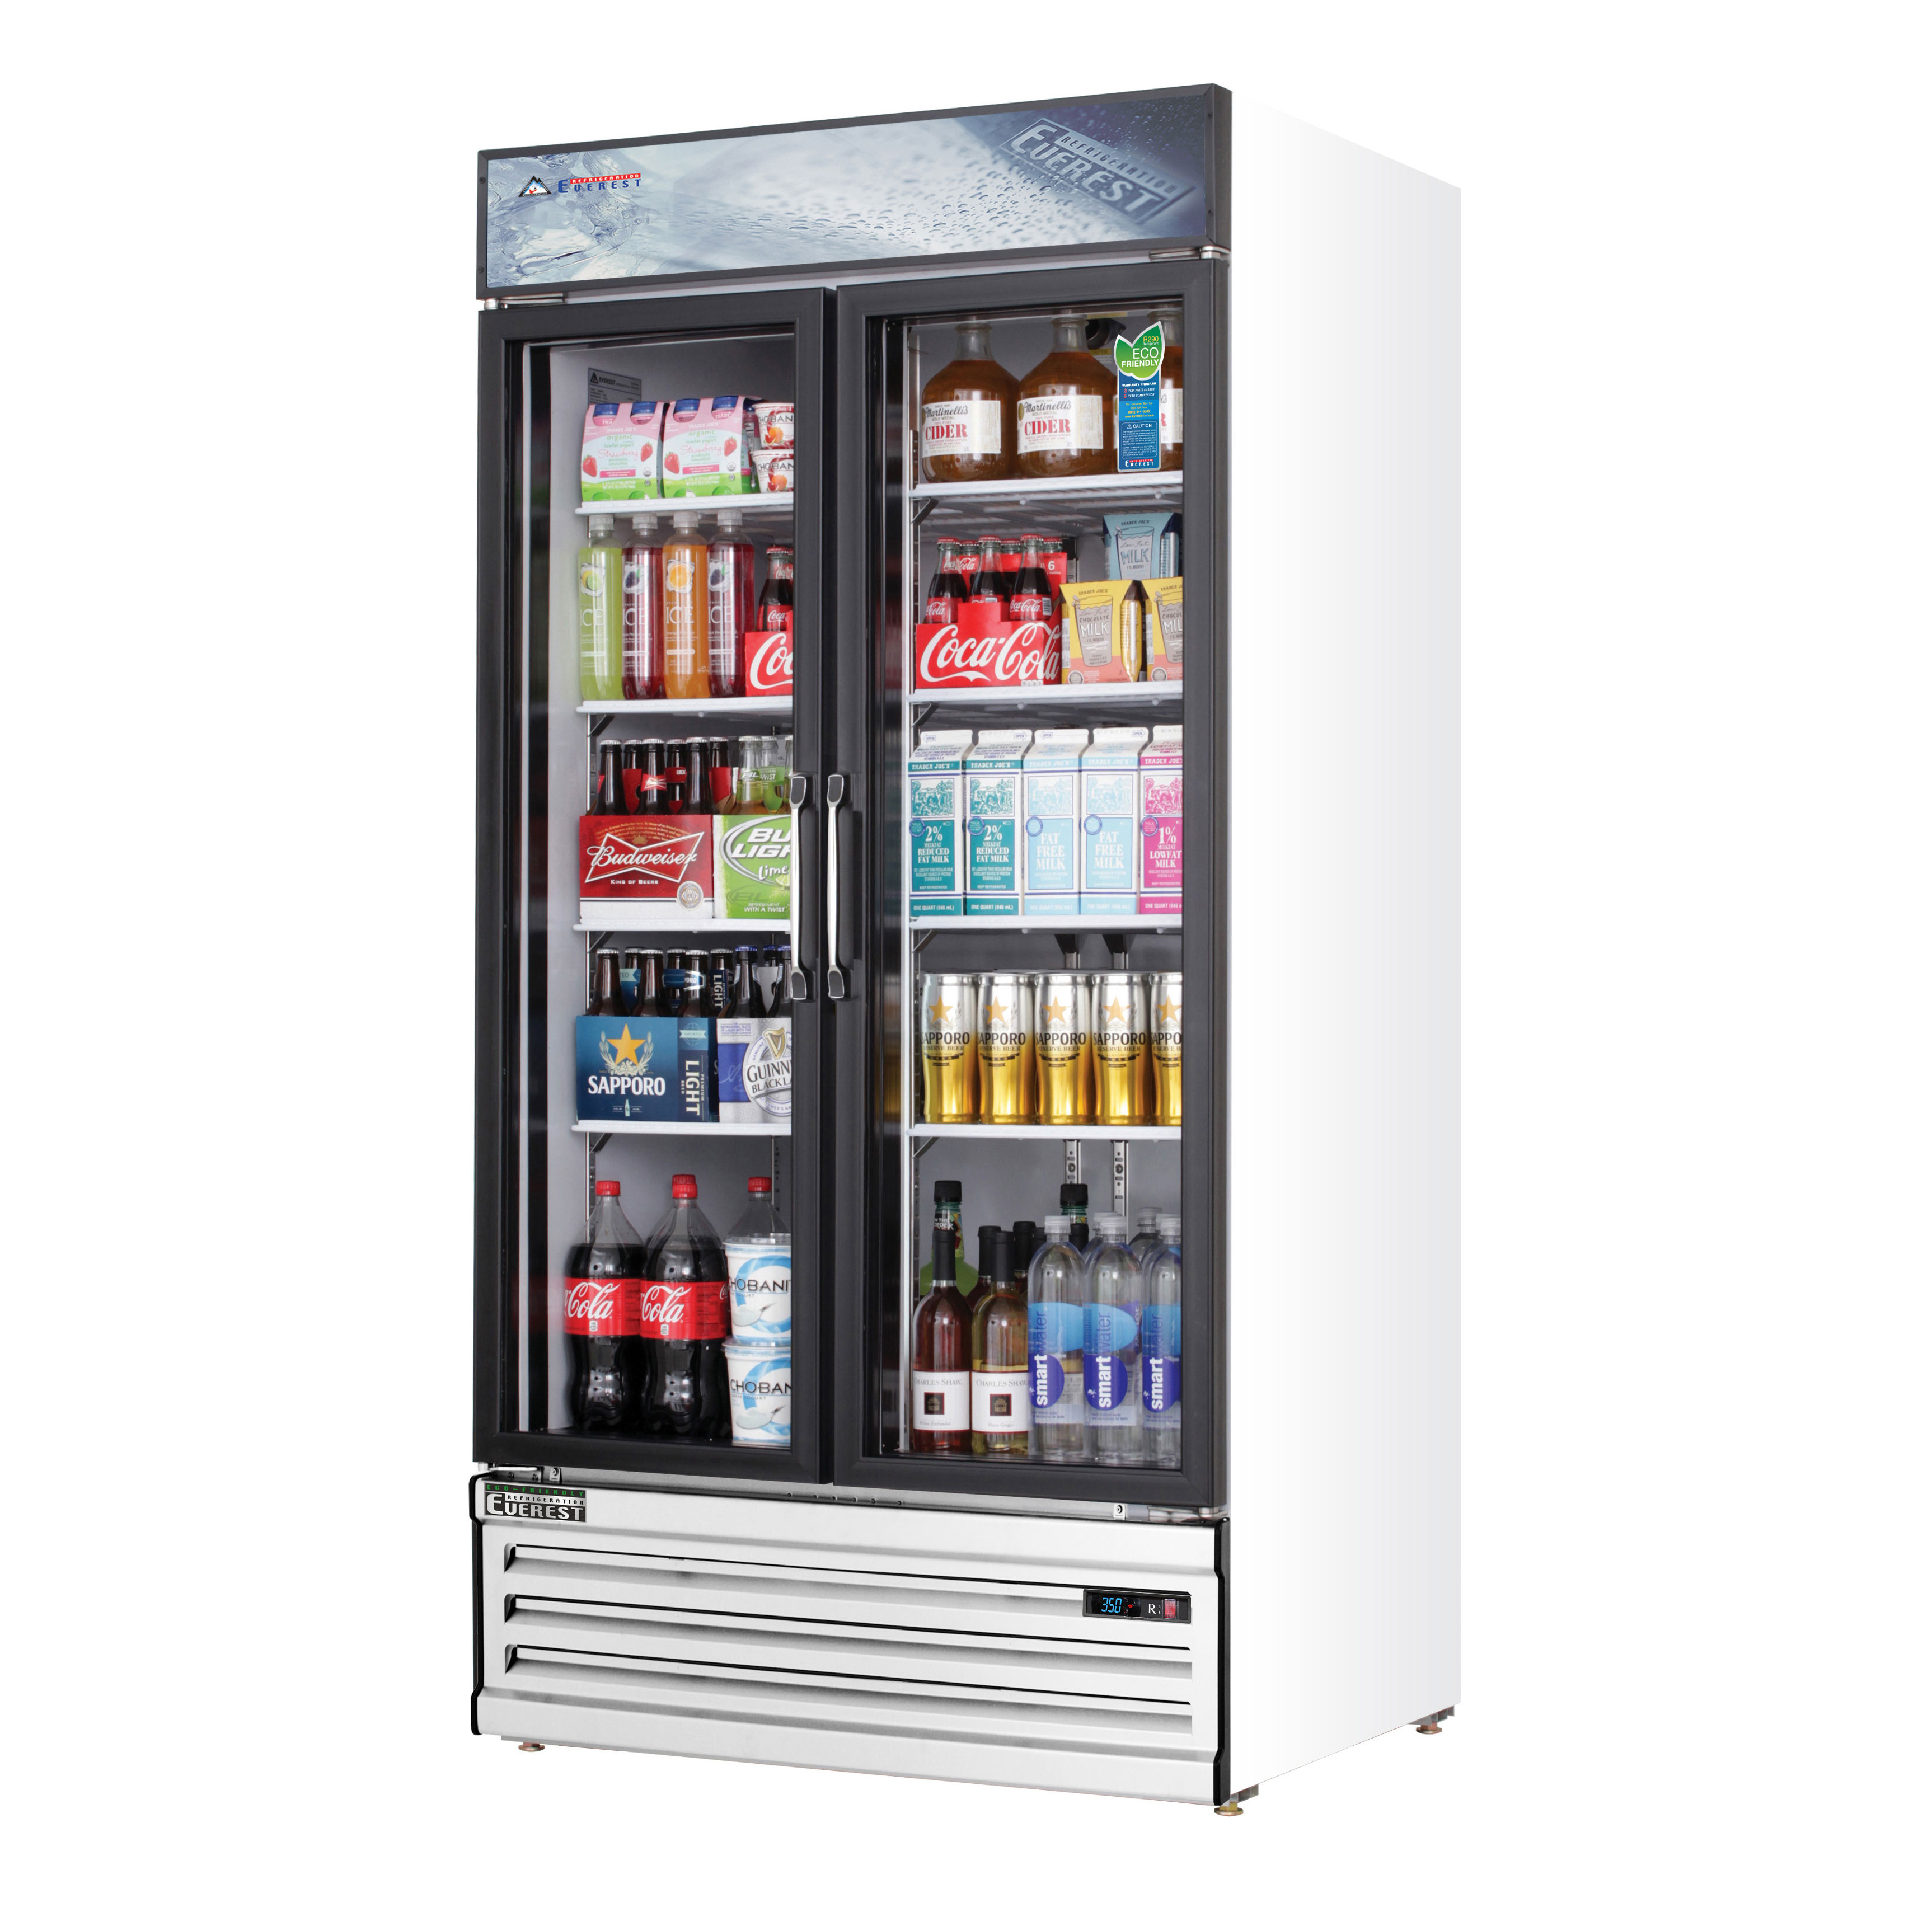 Everest Refrigeration EMSGR33 refrigerator, merchandiser